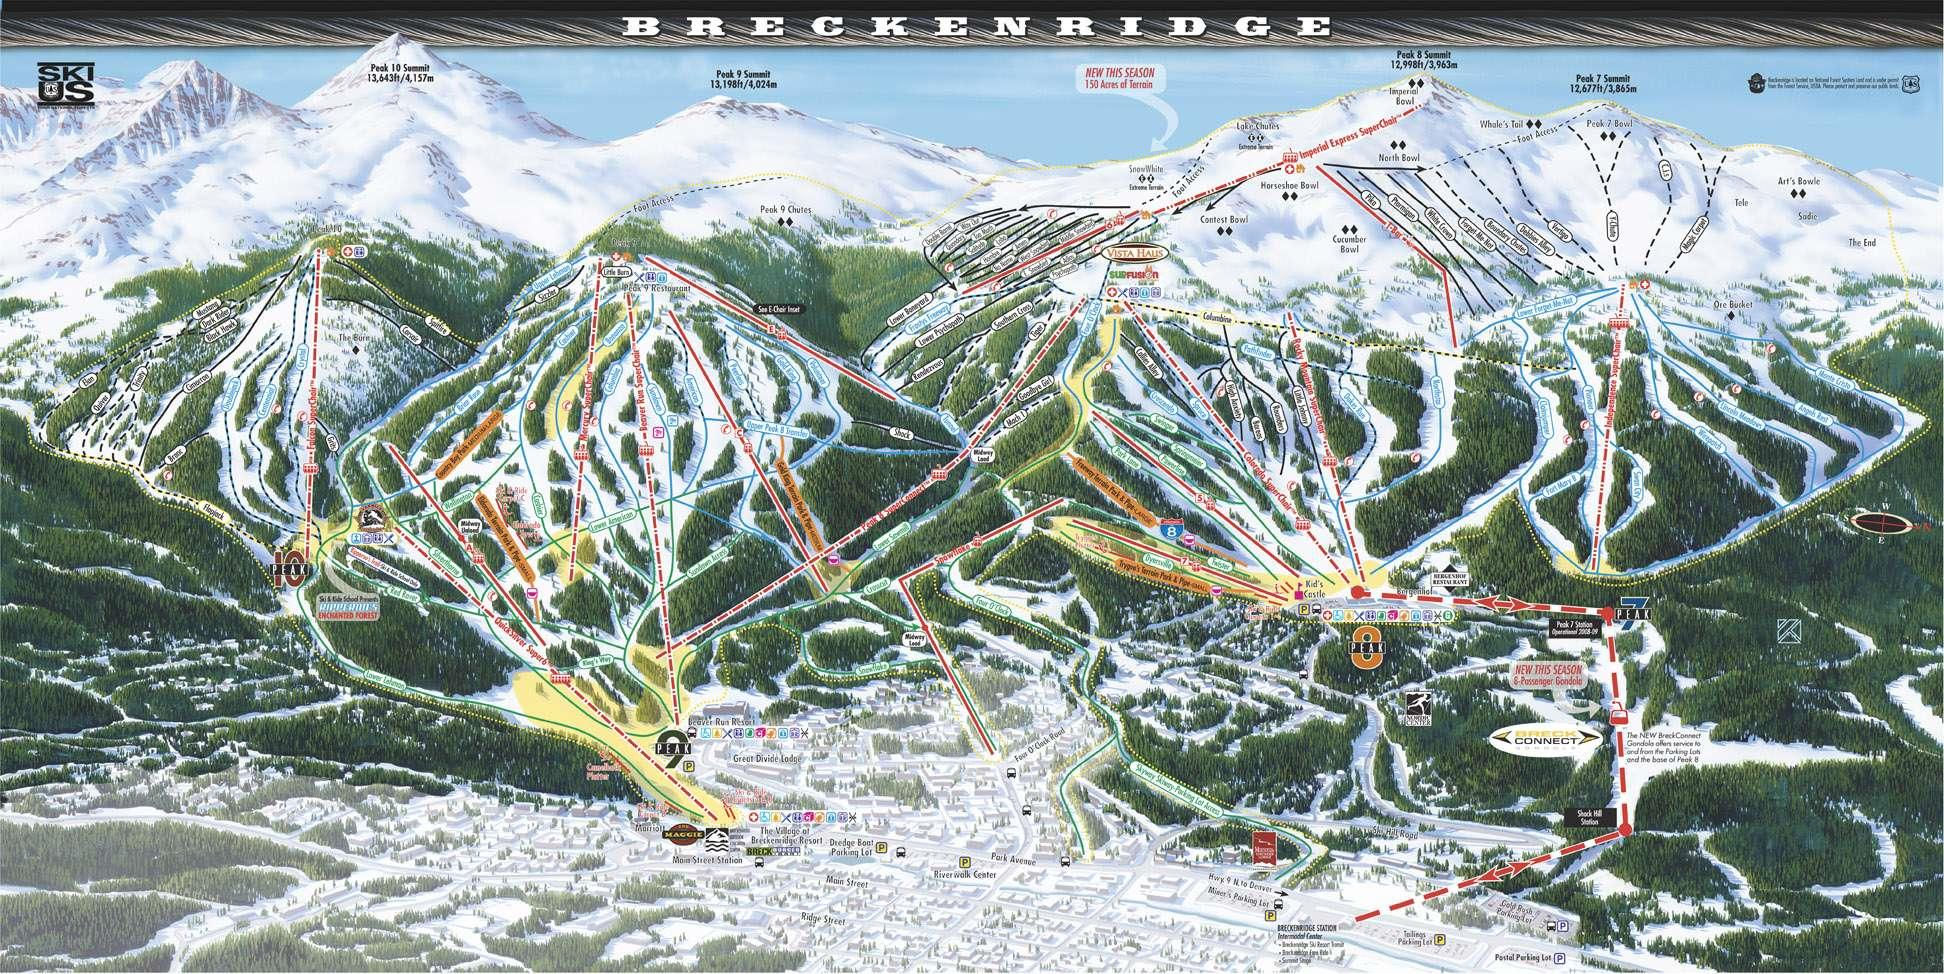 breckenridge colorado lodging, rentals - breckenridge ski resort